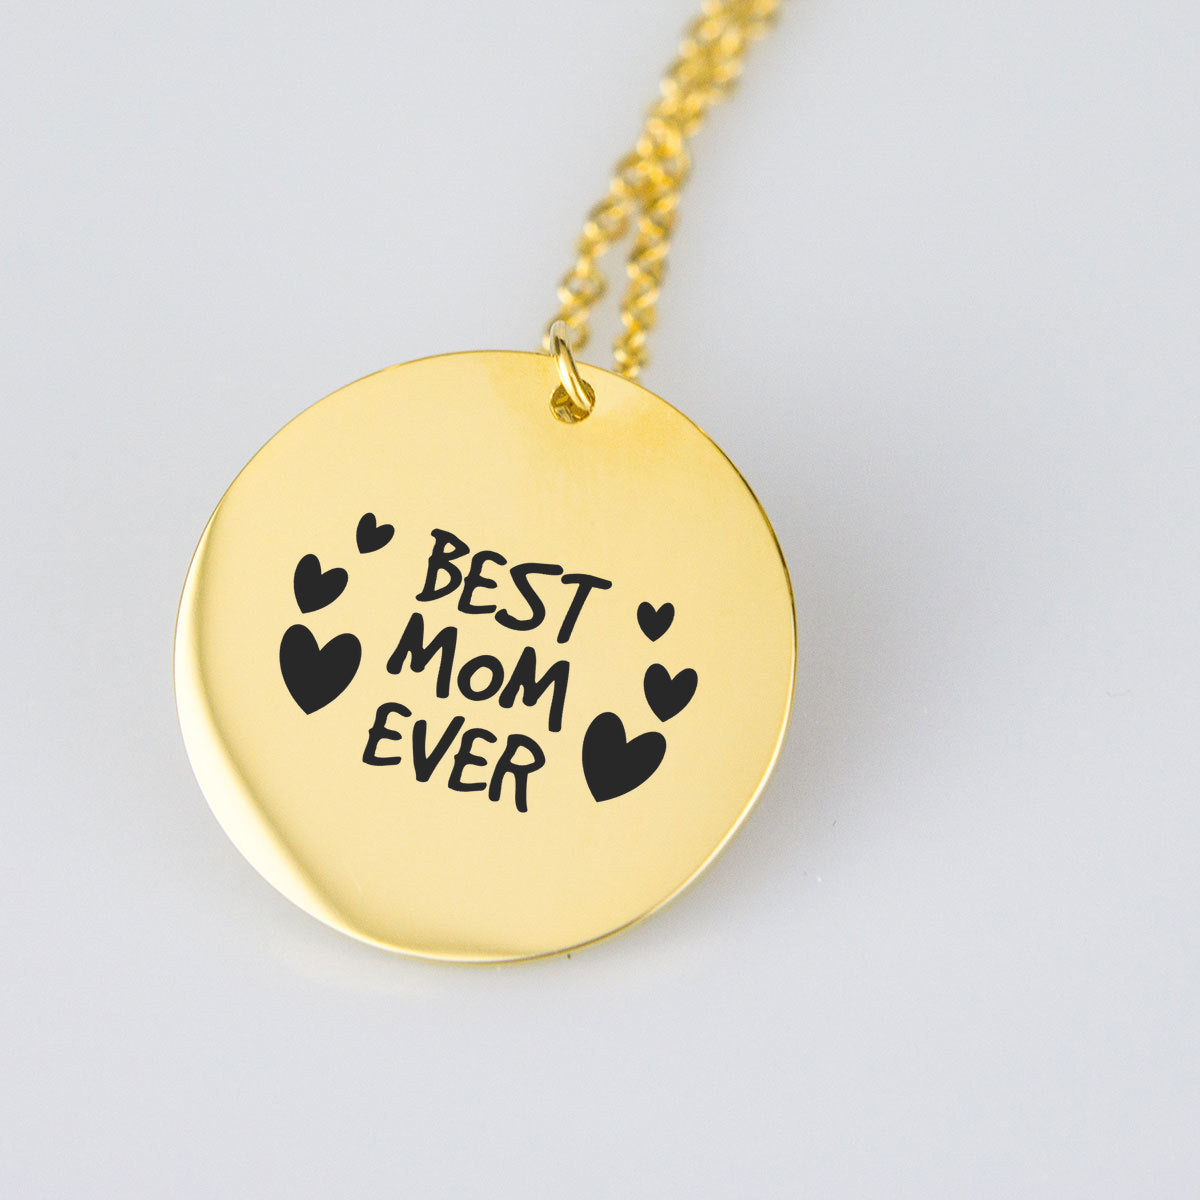 Best Mom Ever Gold Pendant